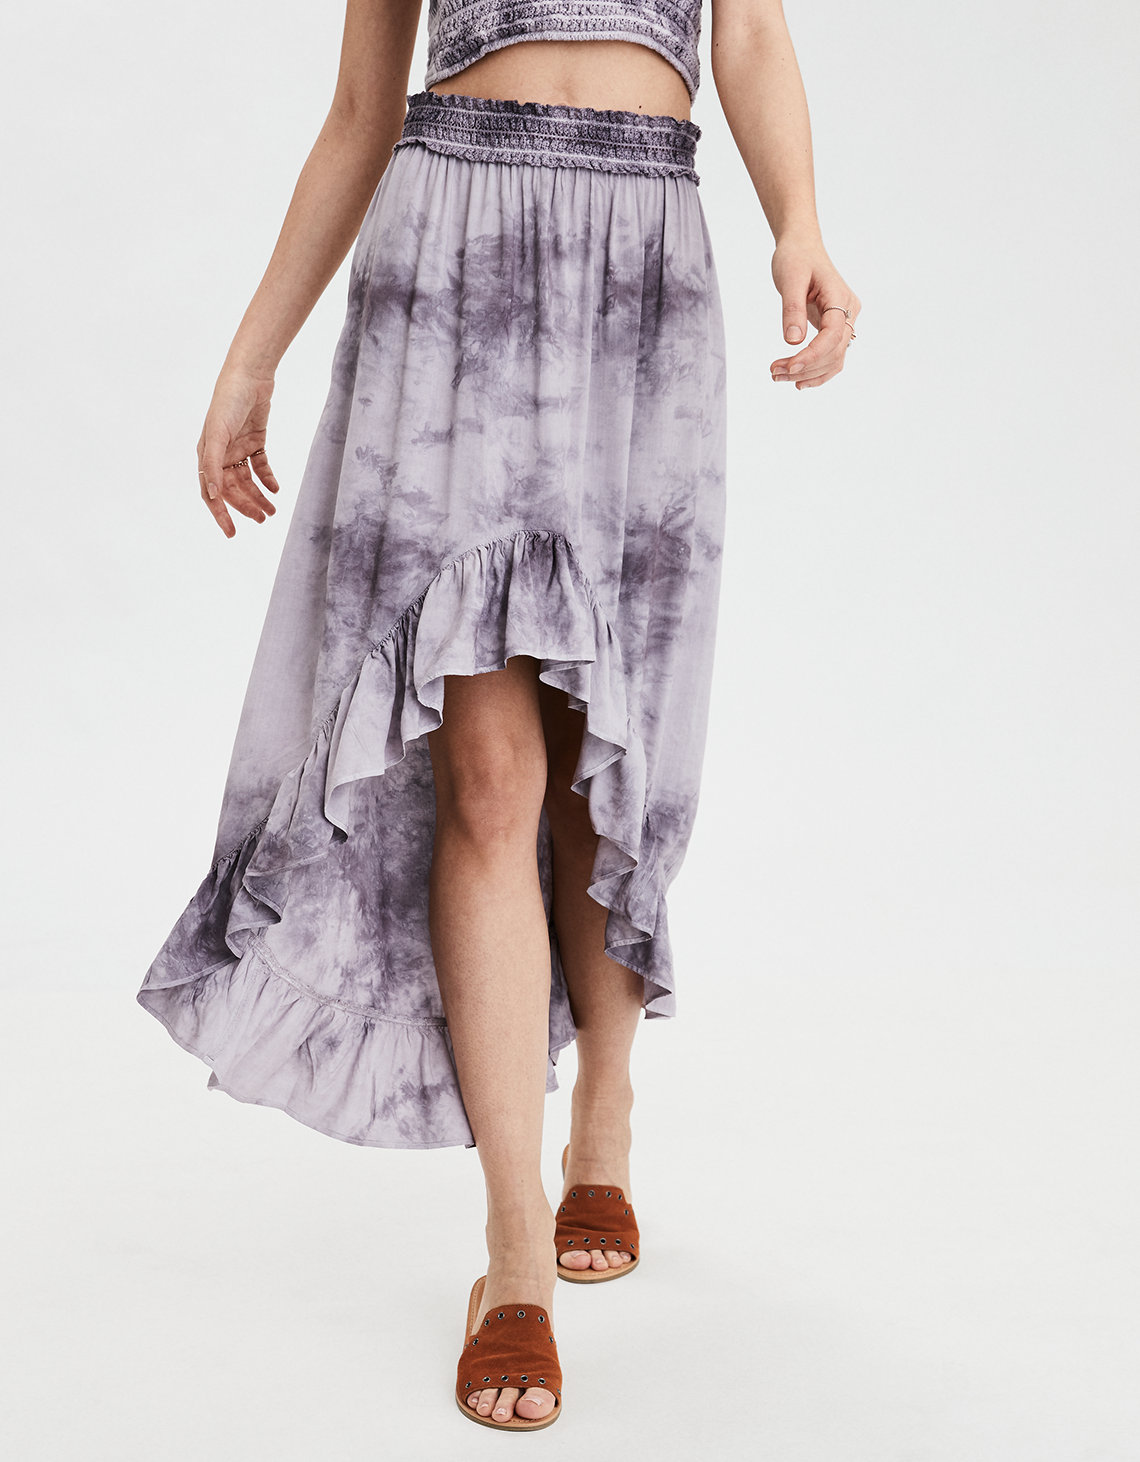 77b8a7dc24ad AE Tie-Dye Hi-Low Maxi Skirt. Placeholder image. Product Image